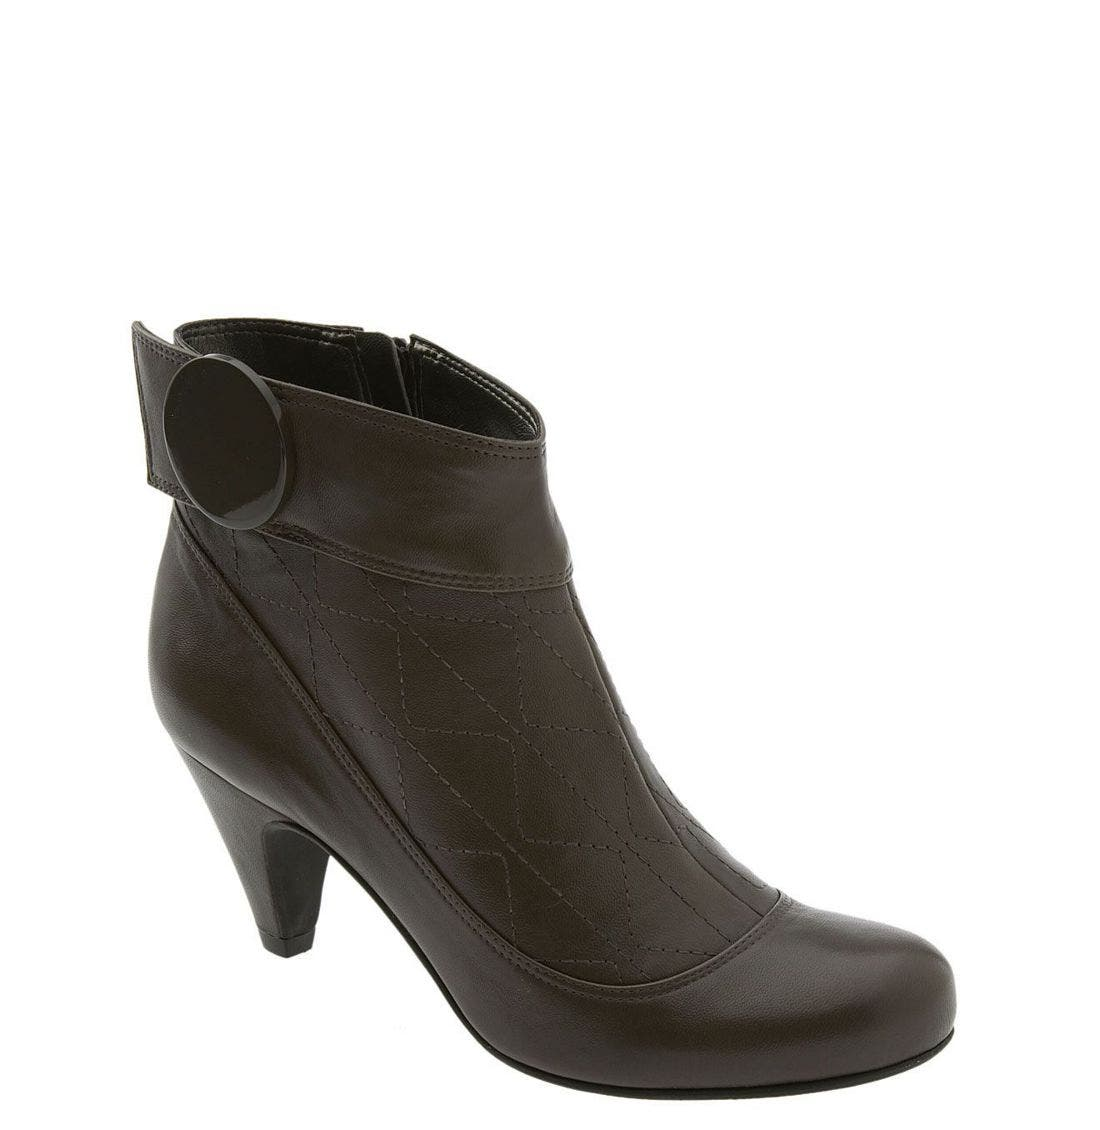 Main Image - Vince Camuto 'Cherie' Quilted Ankle Boot